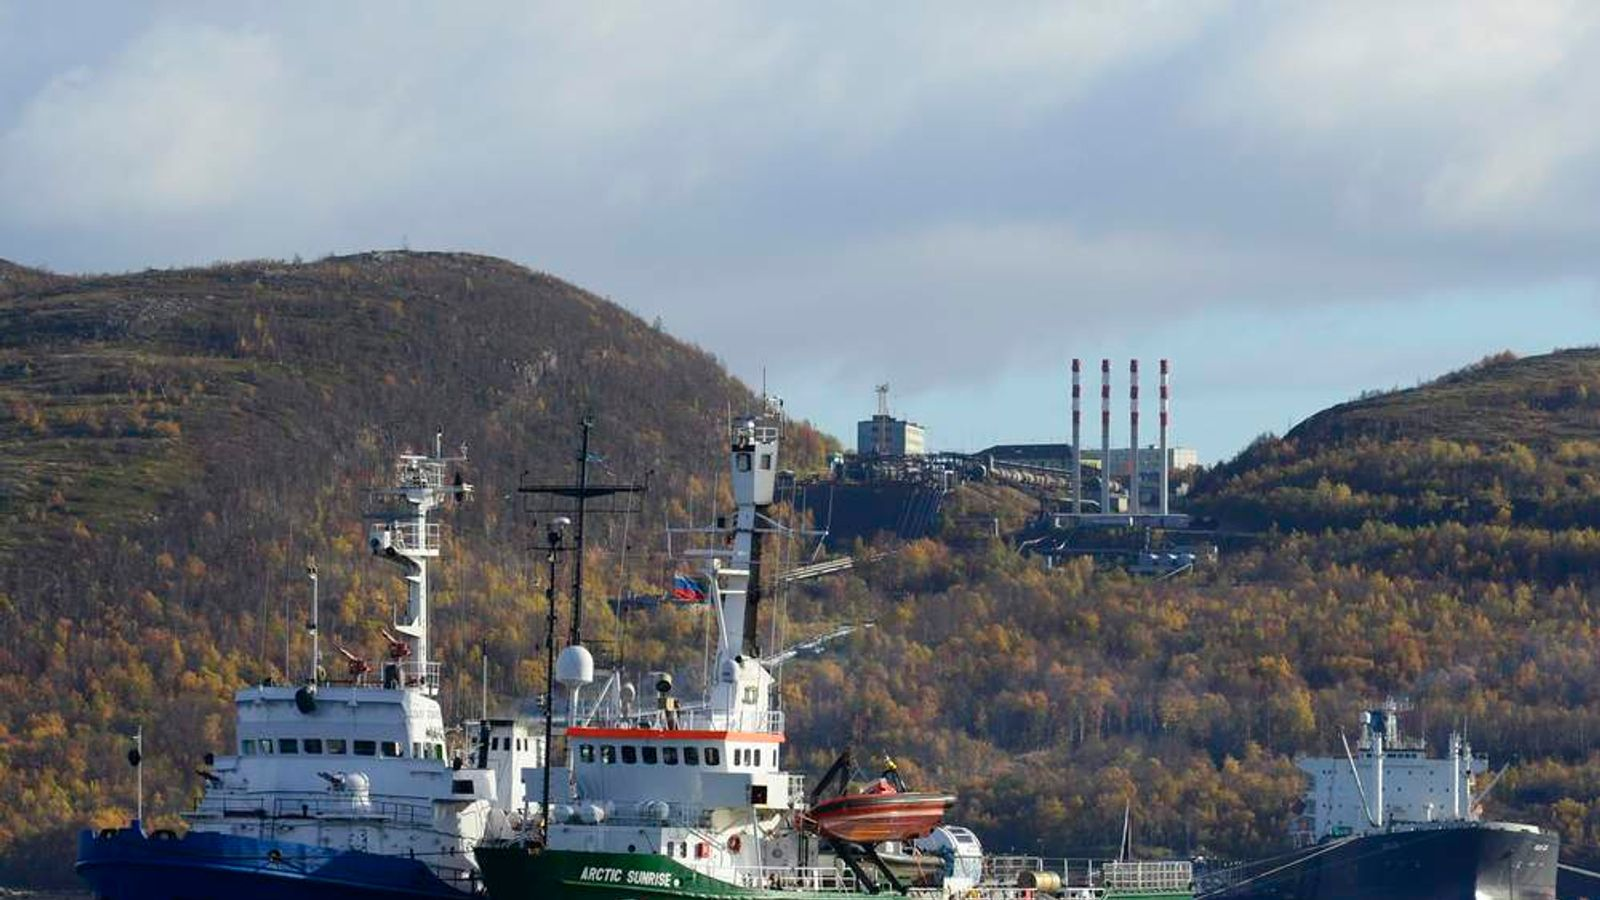 Greenpeace ship Arctic Sunrise is seen anchored outside the Arctic port city of Murmansk